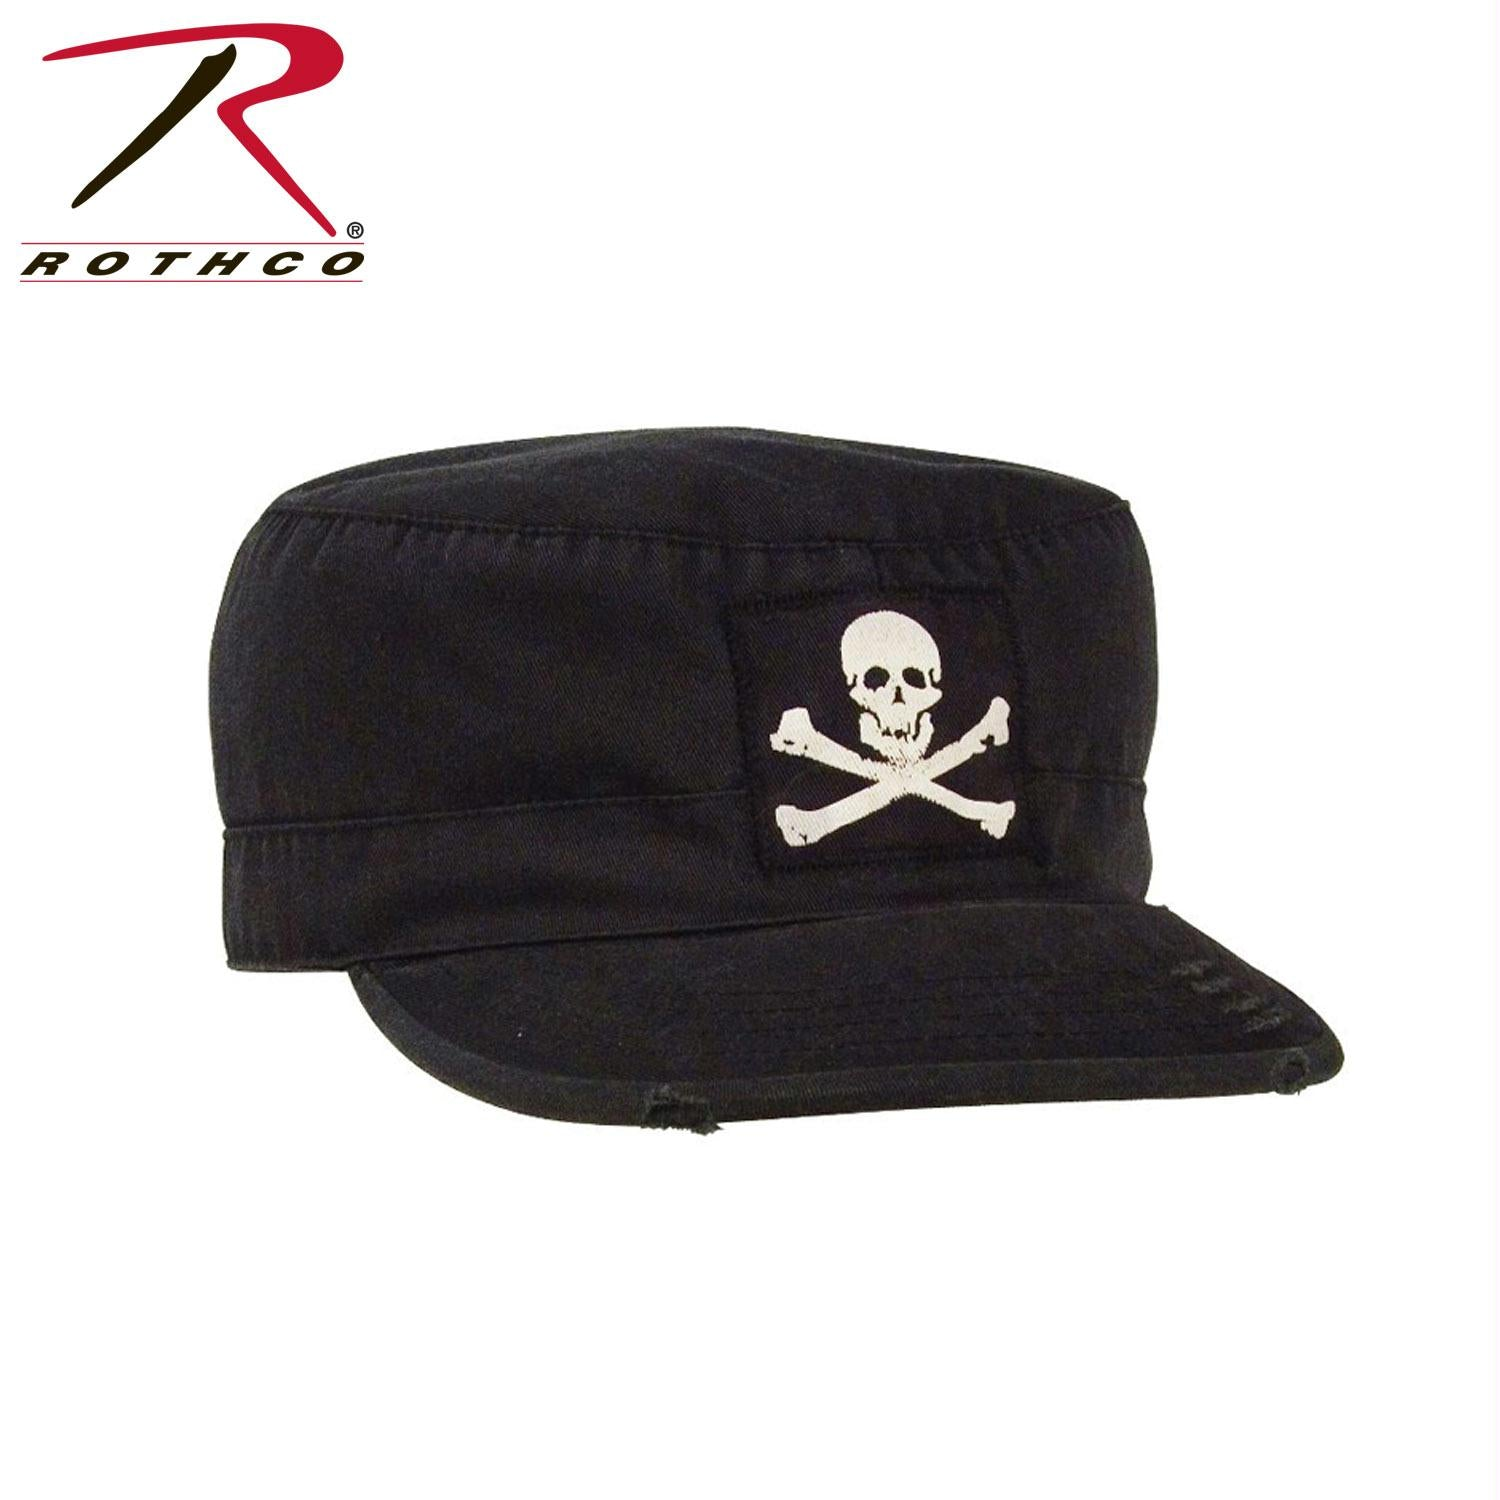 Rothco Vintage Military Fatigue Cap With Jolly Roger - M